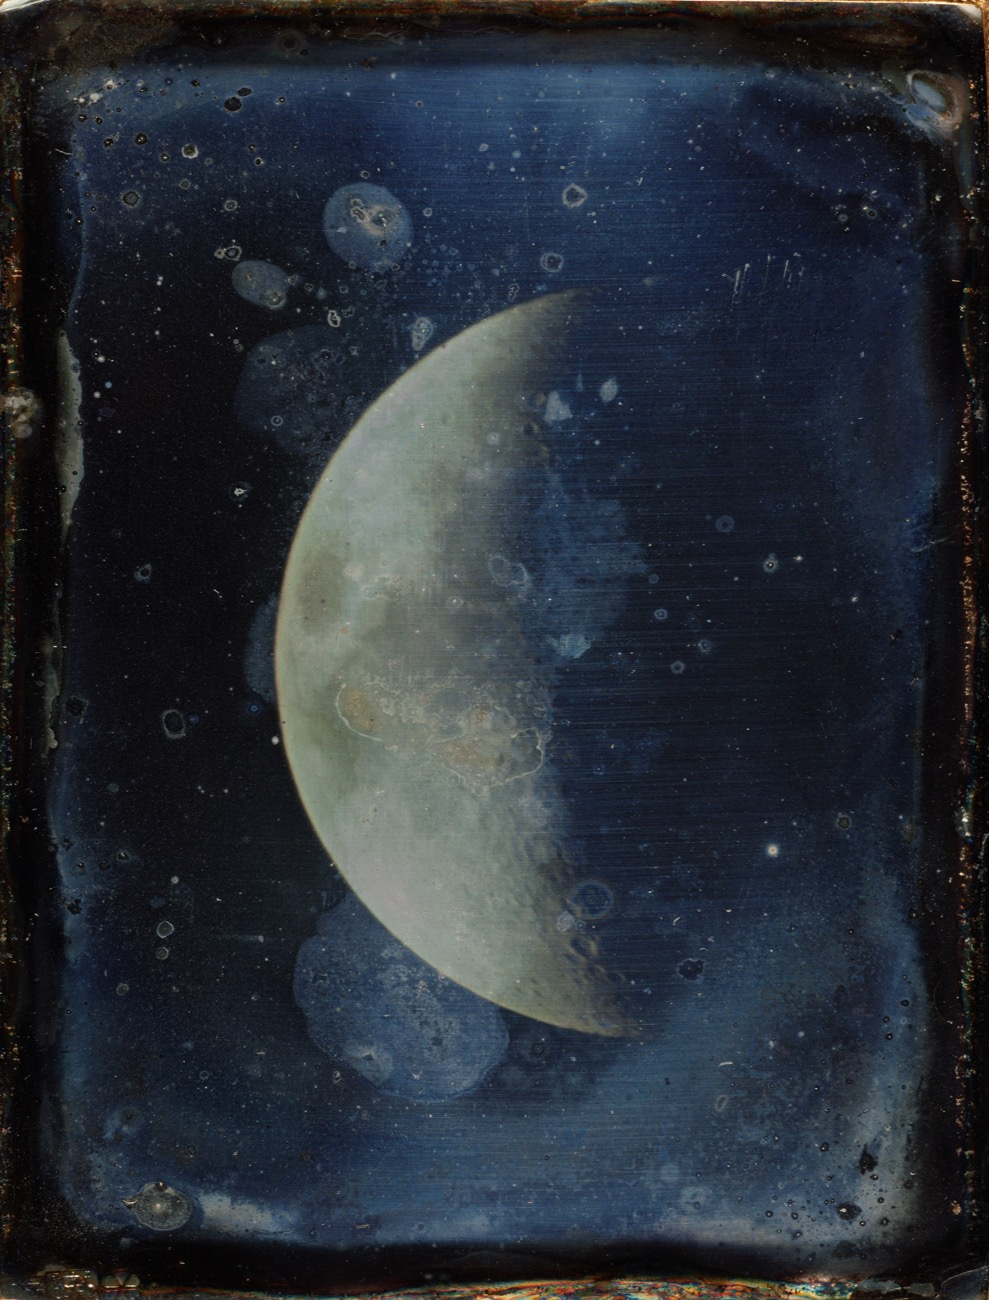 a faded photograph of the moon half obscured in shadow